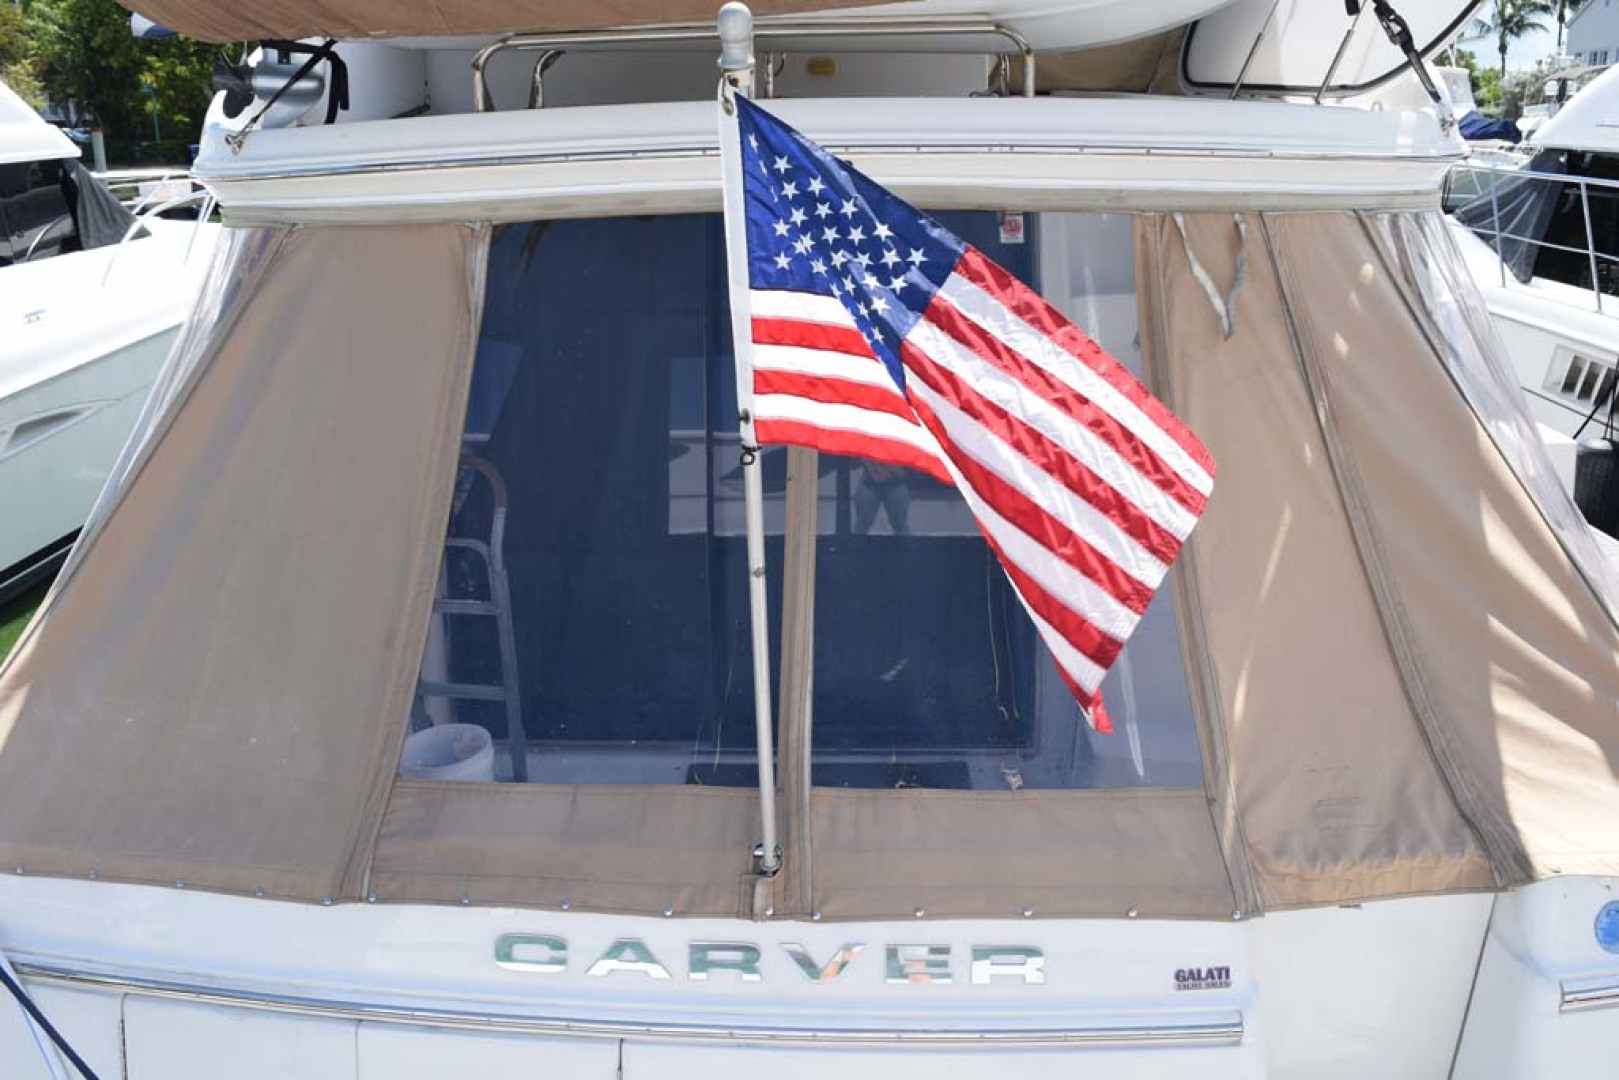 Carver-Voyager 2005-Sawbones Fort Lauderdale-Florida-United States-Aft Deck Canvas-1068999 | Thumbnail